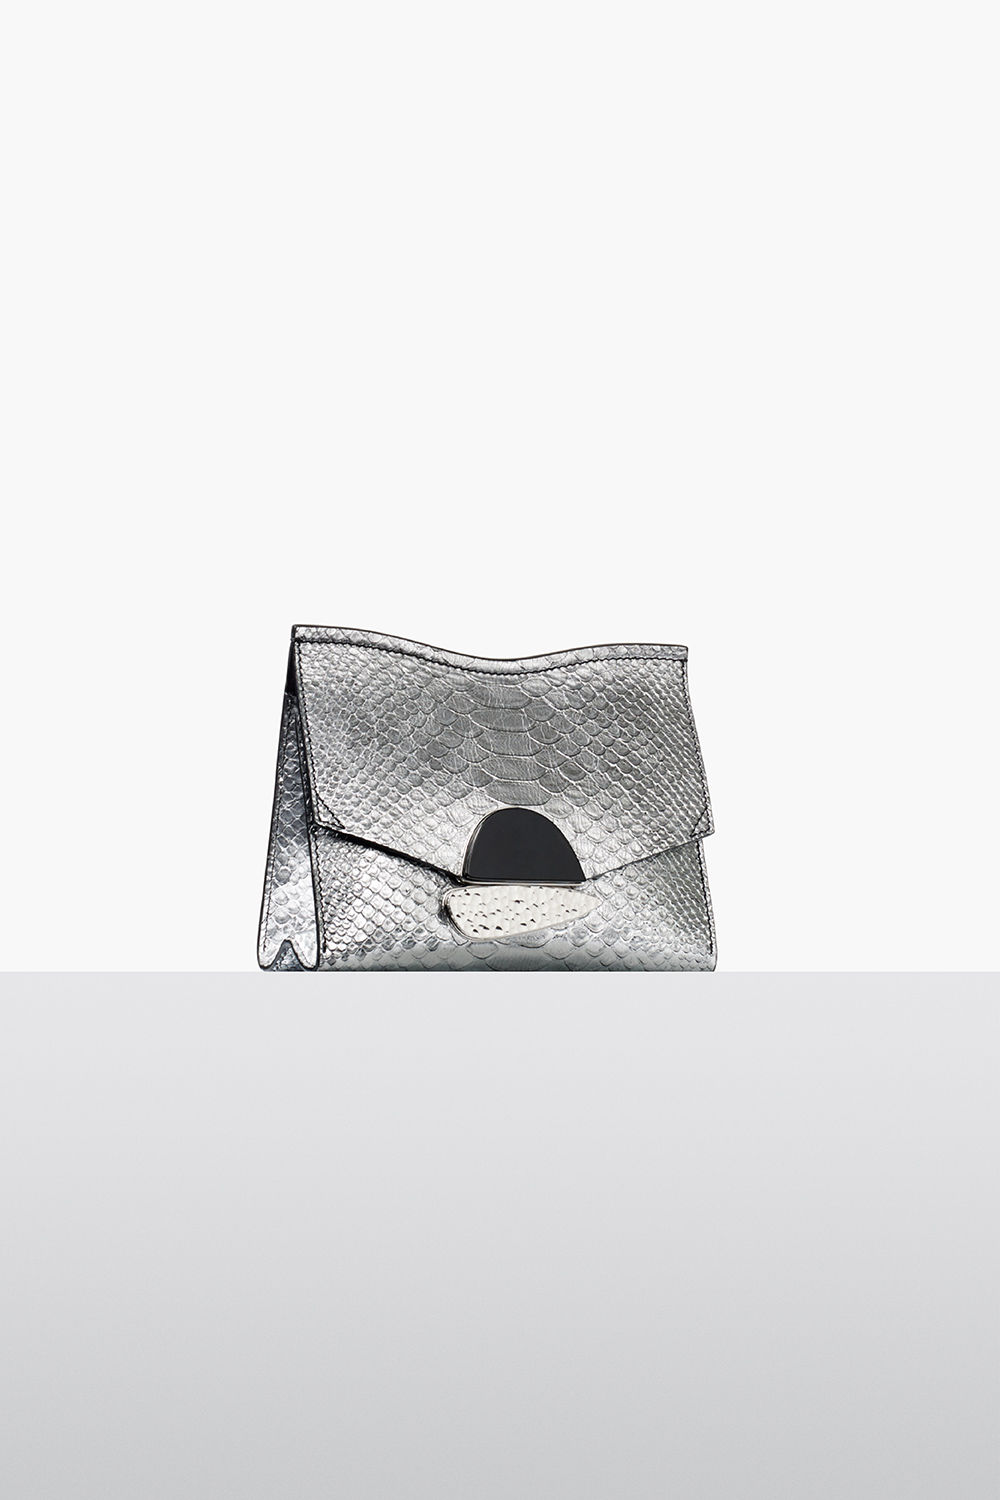 proenza schouler fall 2017 silver metallic embossed python small curl clutch